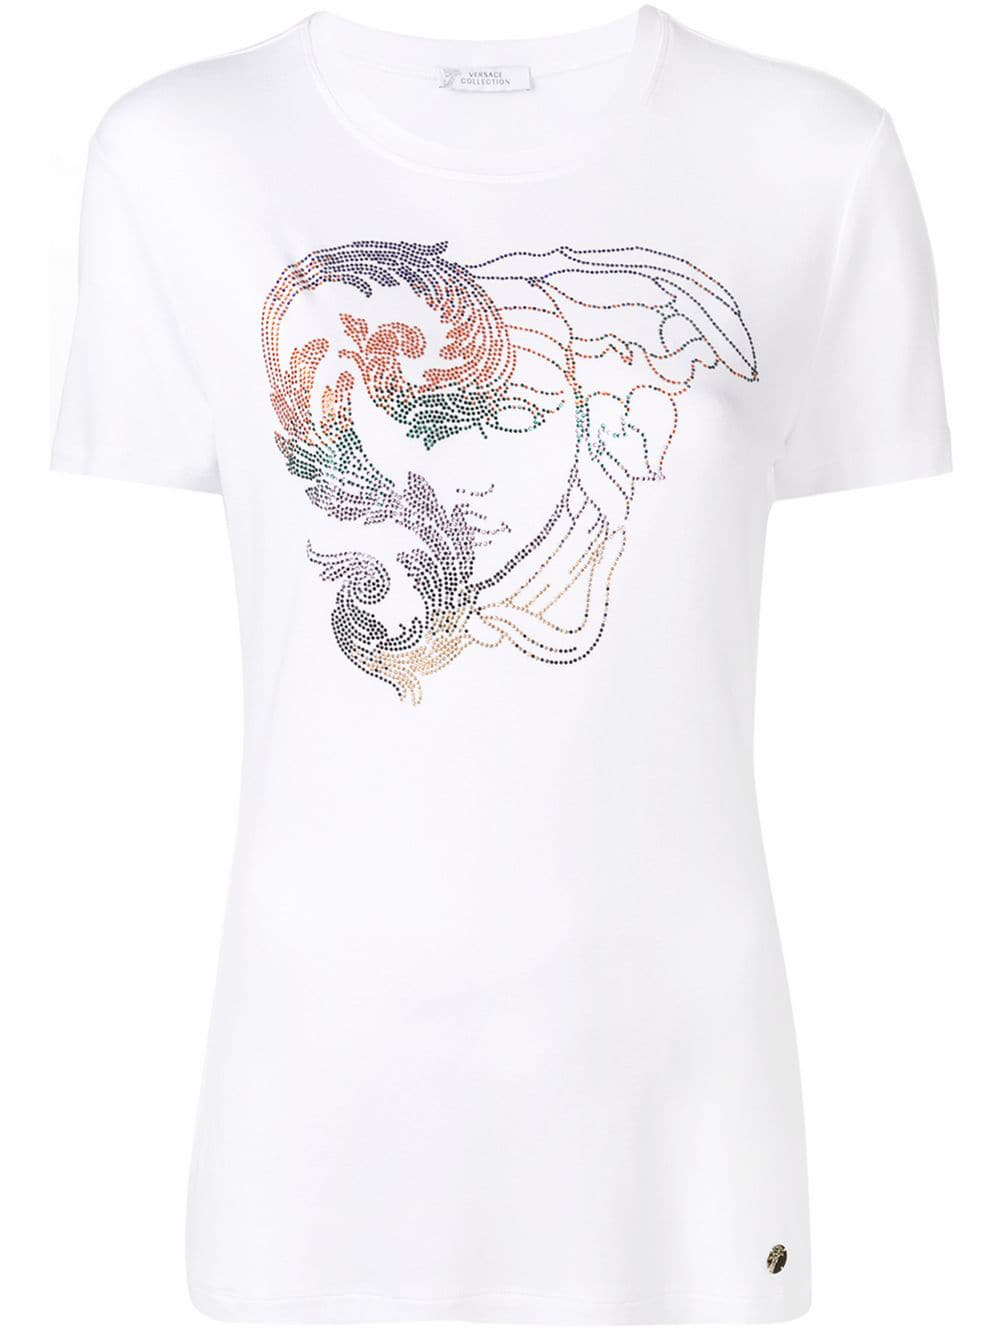 43444db3 Versace Collection Medusa Head Crystal-Embellished T-Shirt - White ...